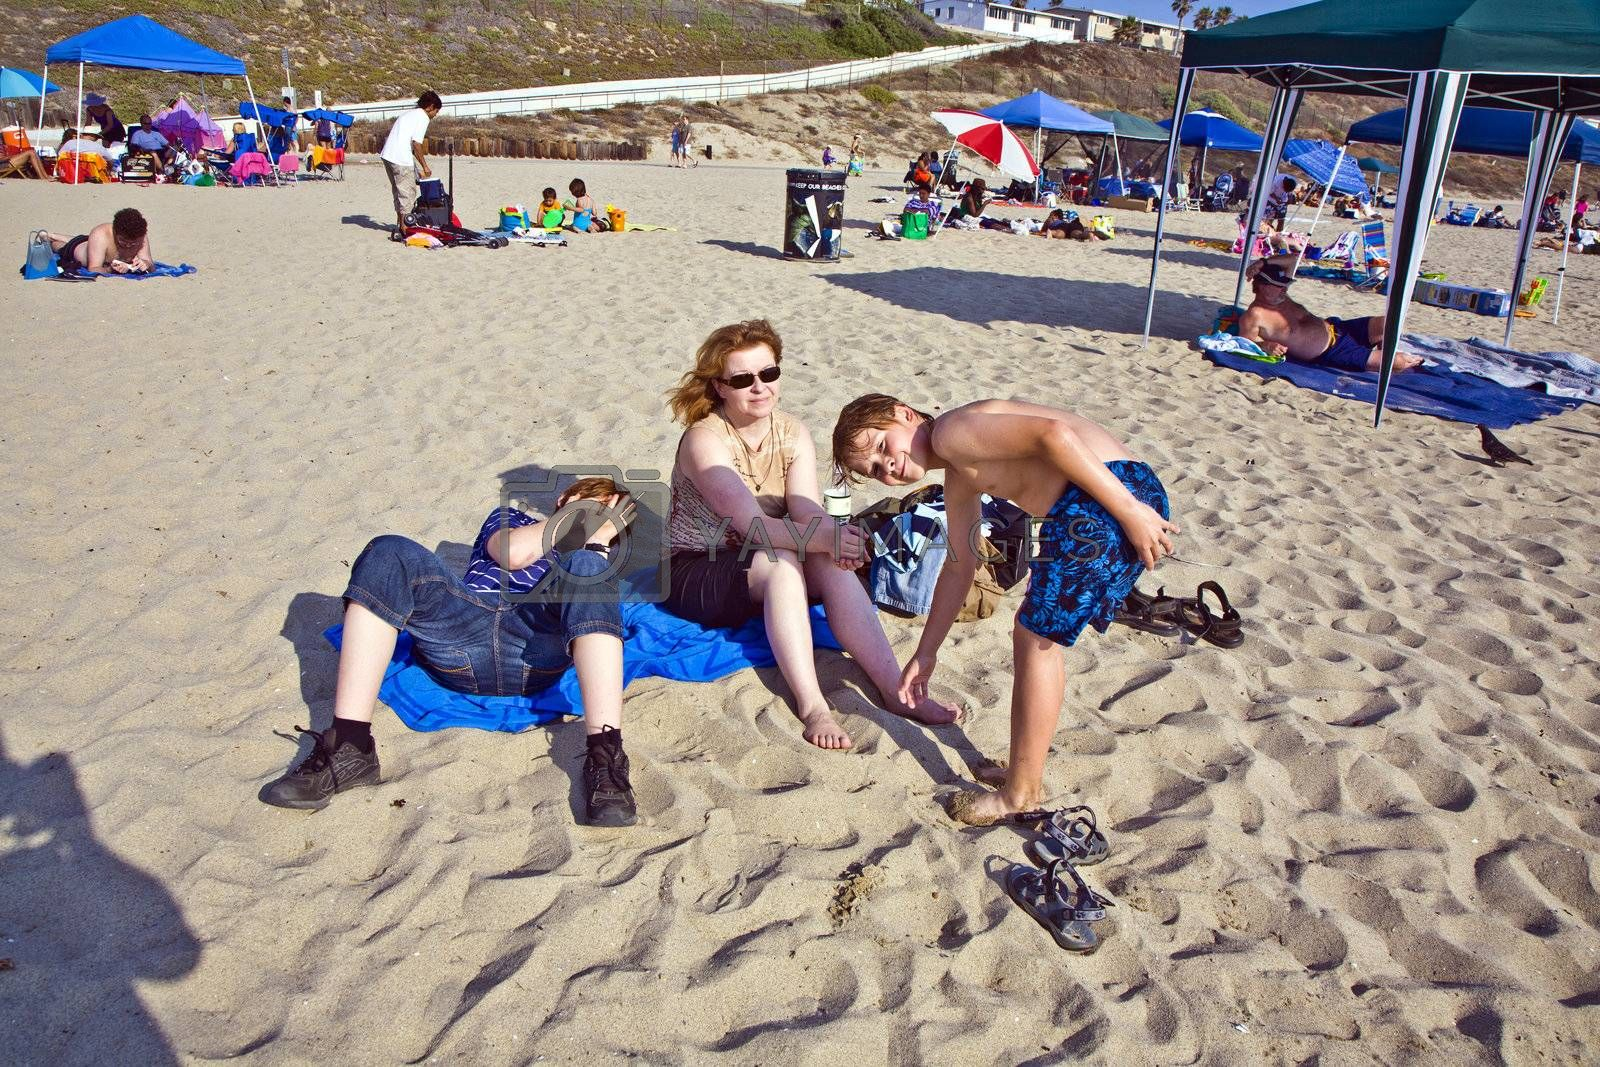 REDONDO BEACH, USA - JULY 7: people enjoy the beach on July 7,2008 in Redondo Beach, USA. Redondo Beach was originally part of the 1785 Rancho San Pedro Spanish land grant that later became the South Redondo area.